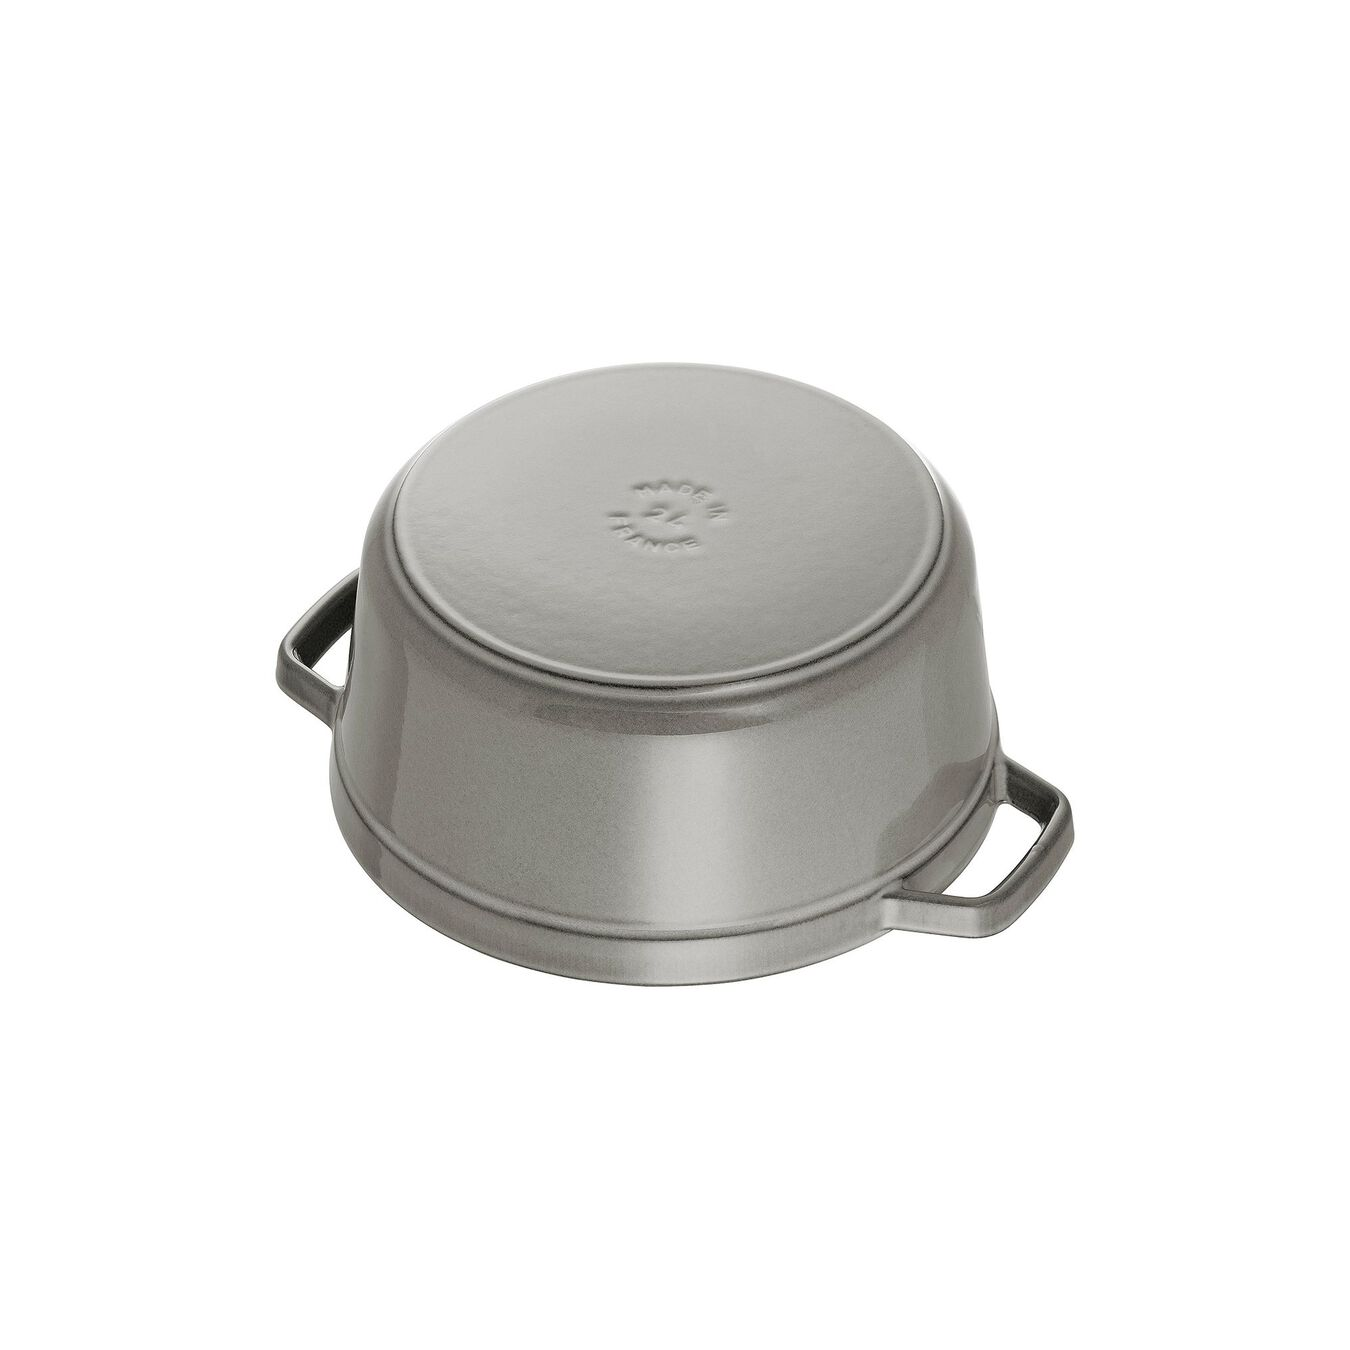 3.75 l Cast iron round Cocotte, Graphite-Grey - Visual Imperfections,,large 3